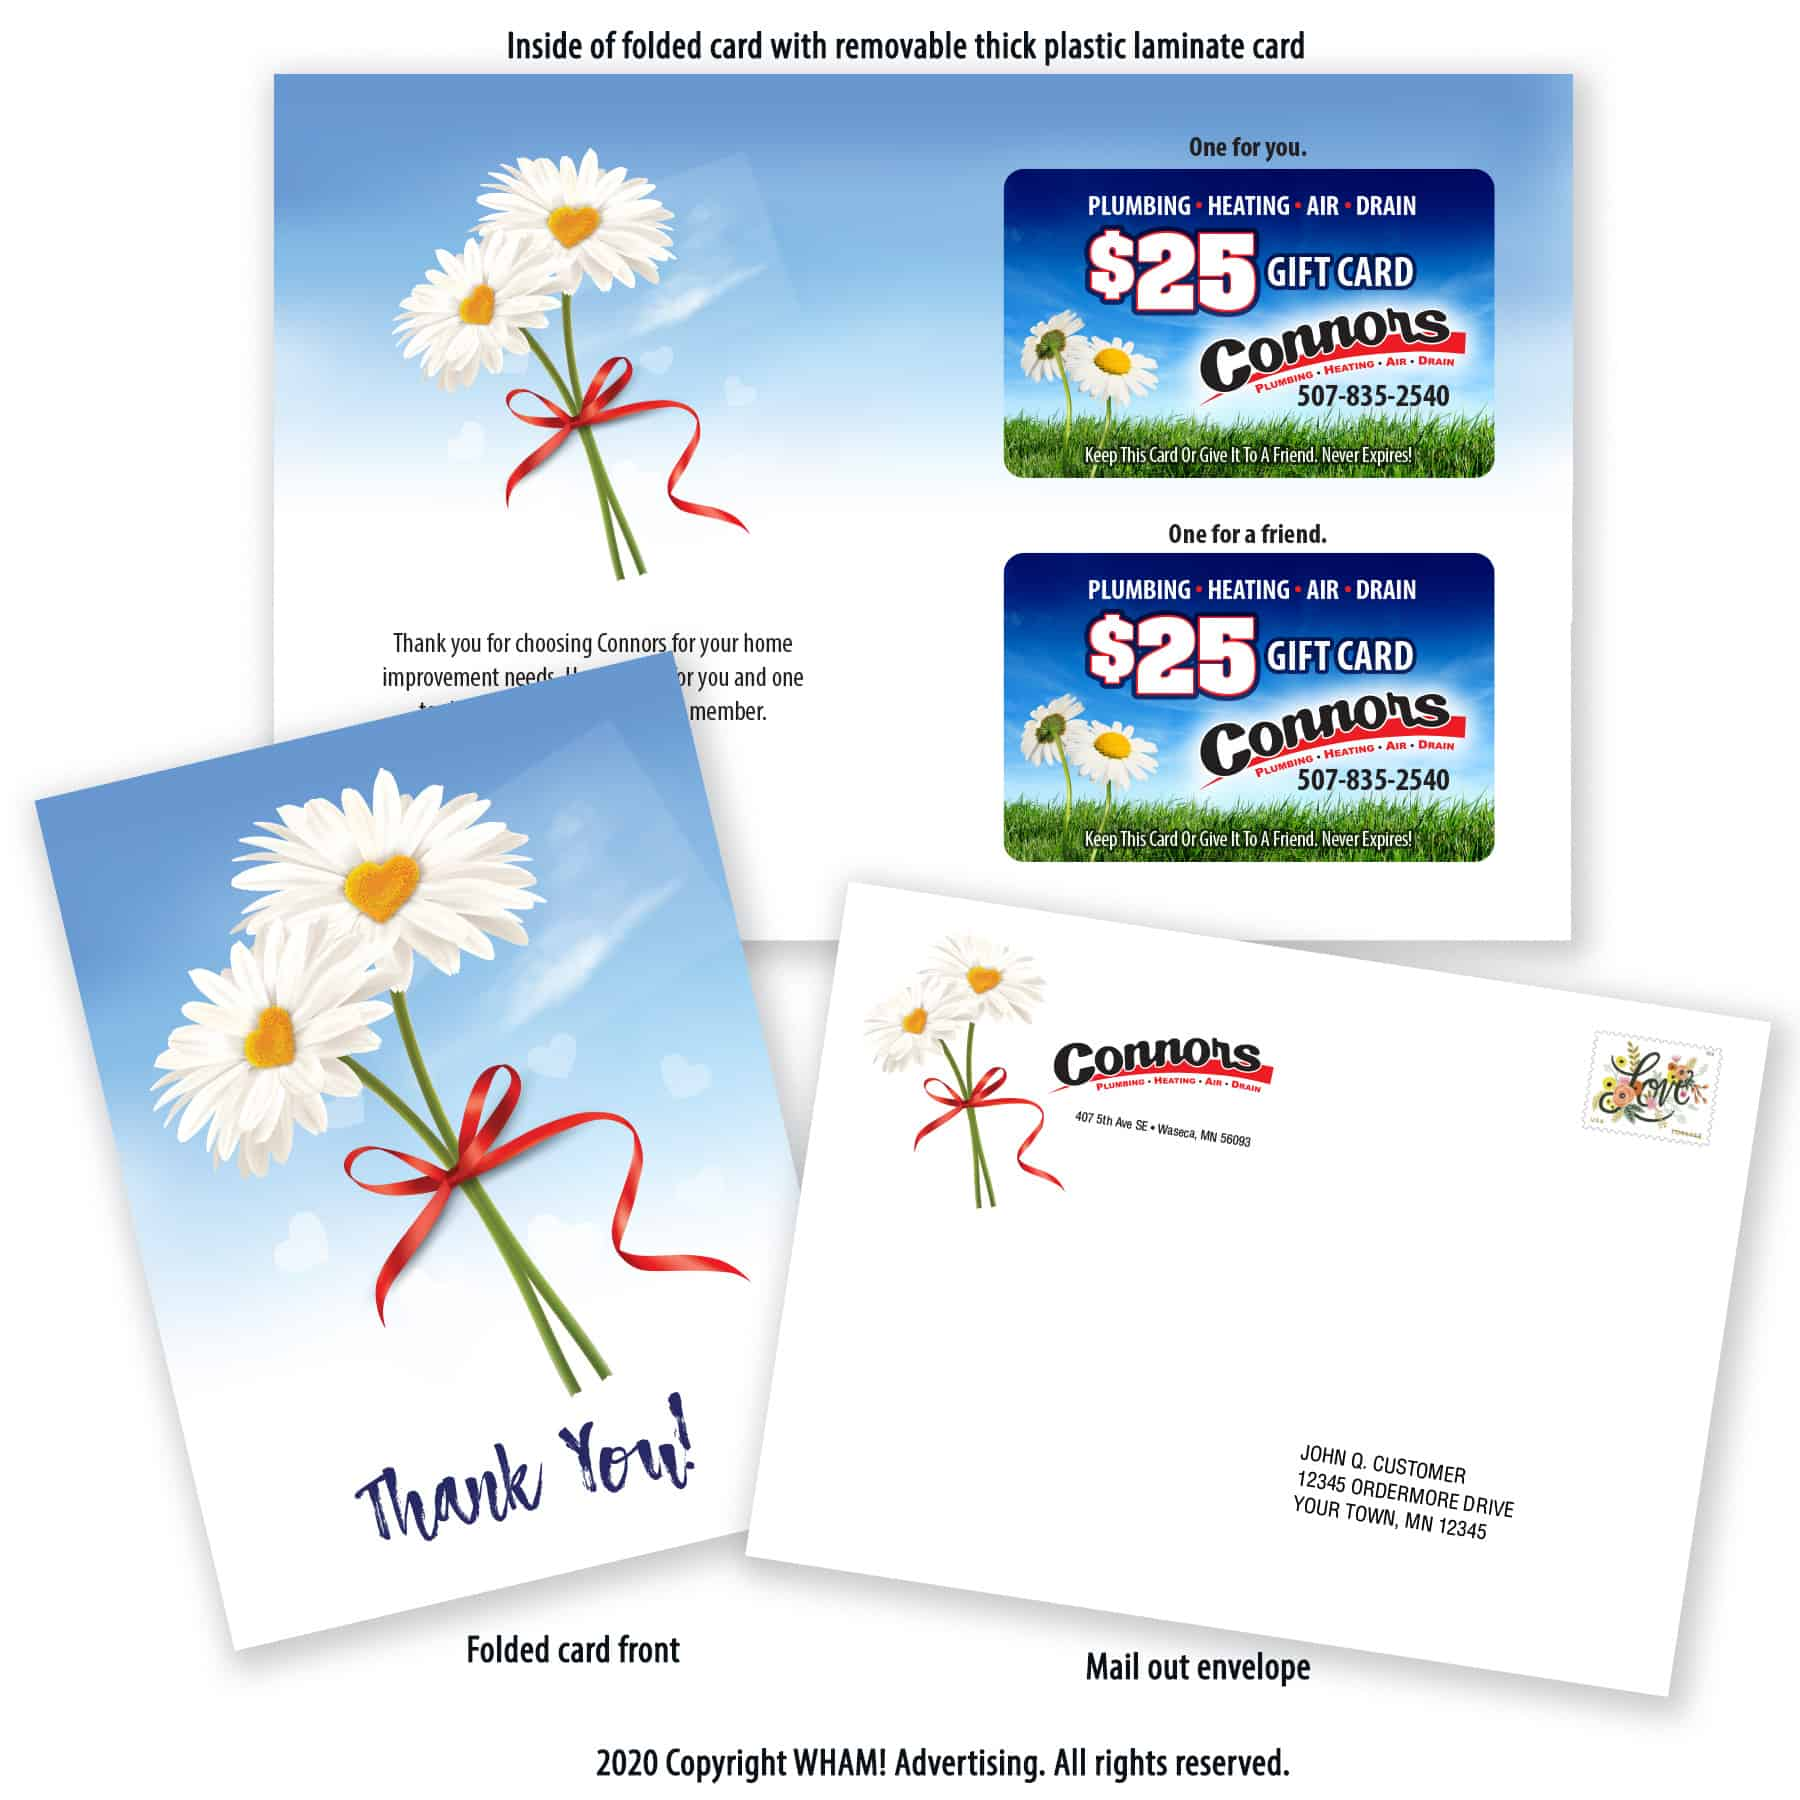 Contractor Gift Card Marketing Package